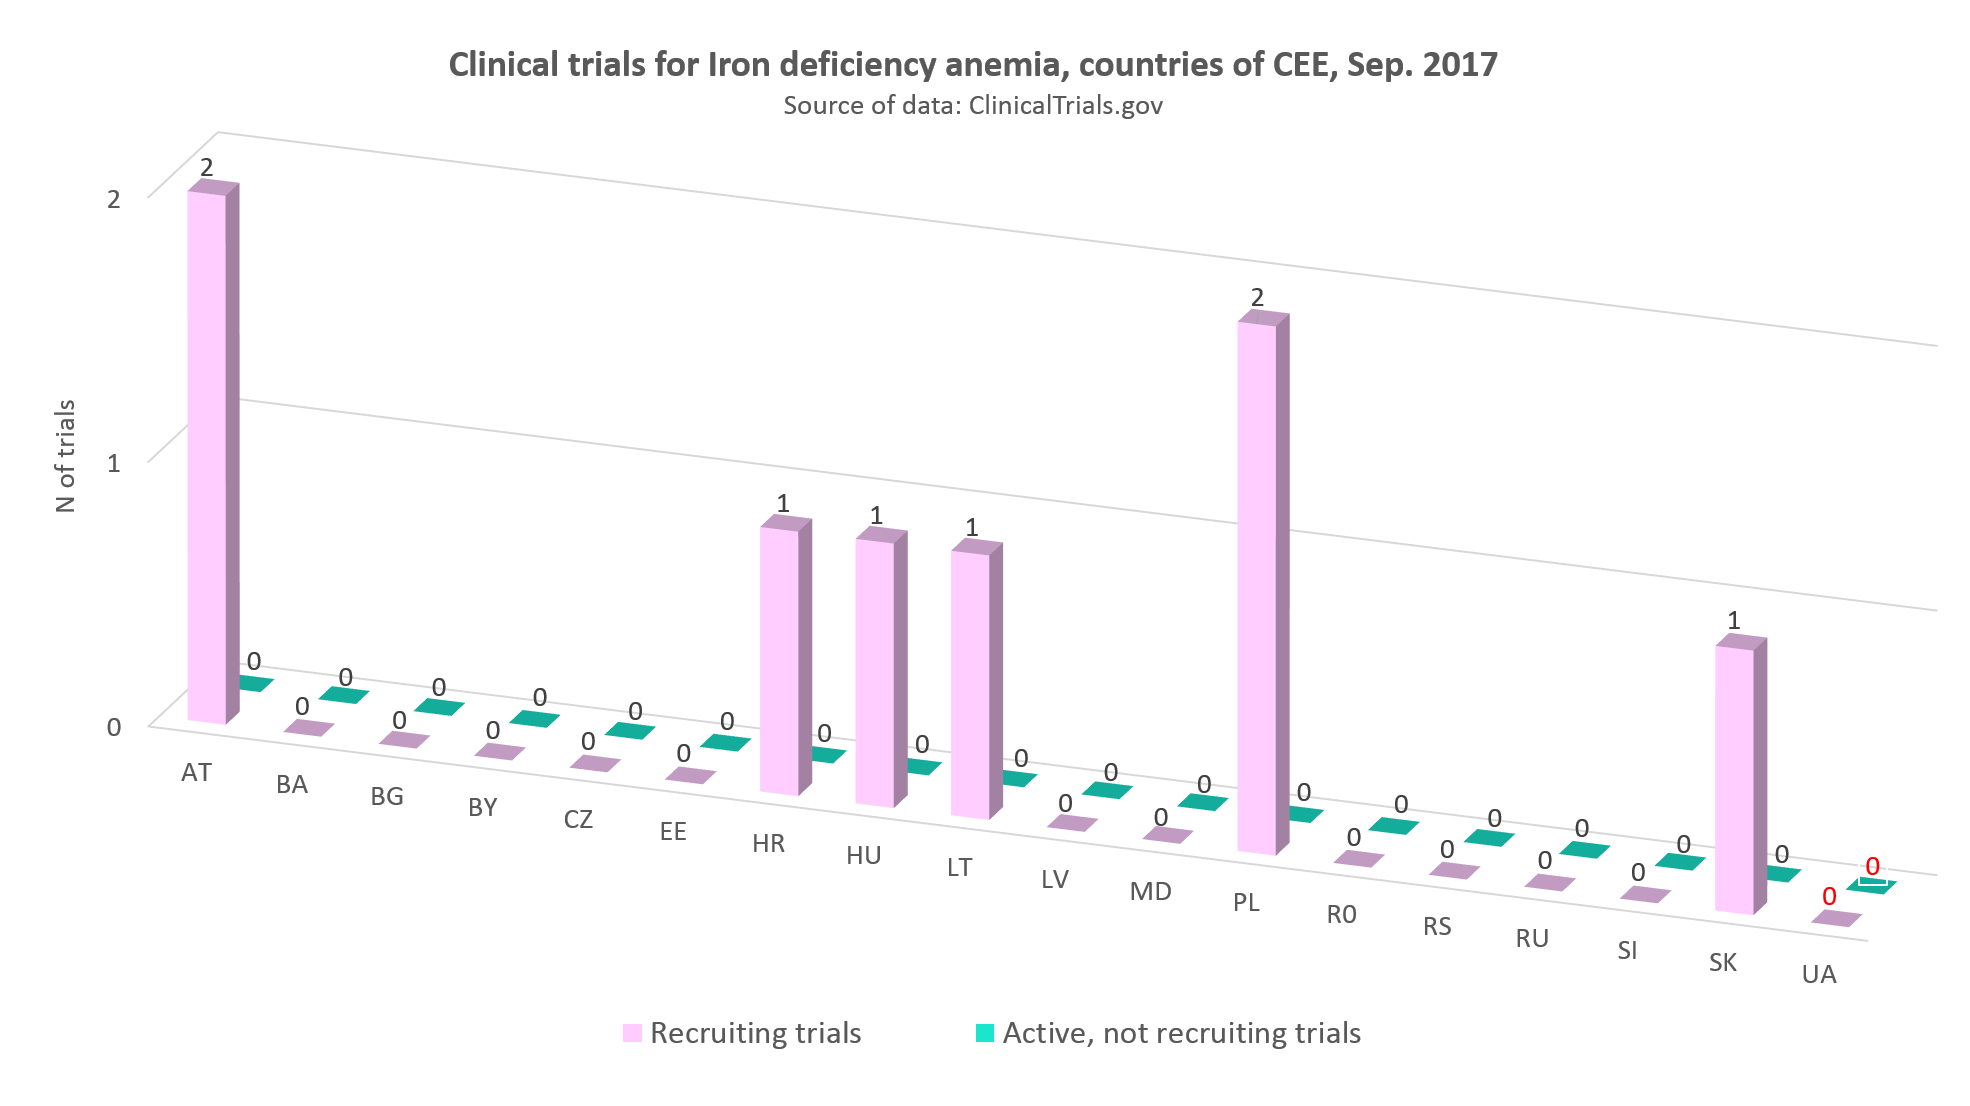 Clinical trials for iron deficiency anemia in countries of CEE, September 2017